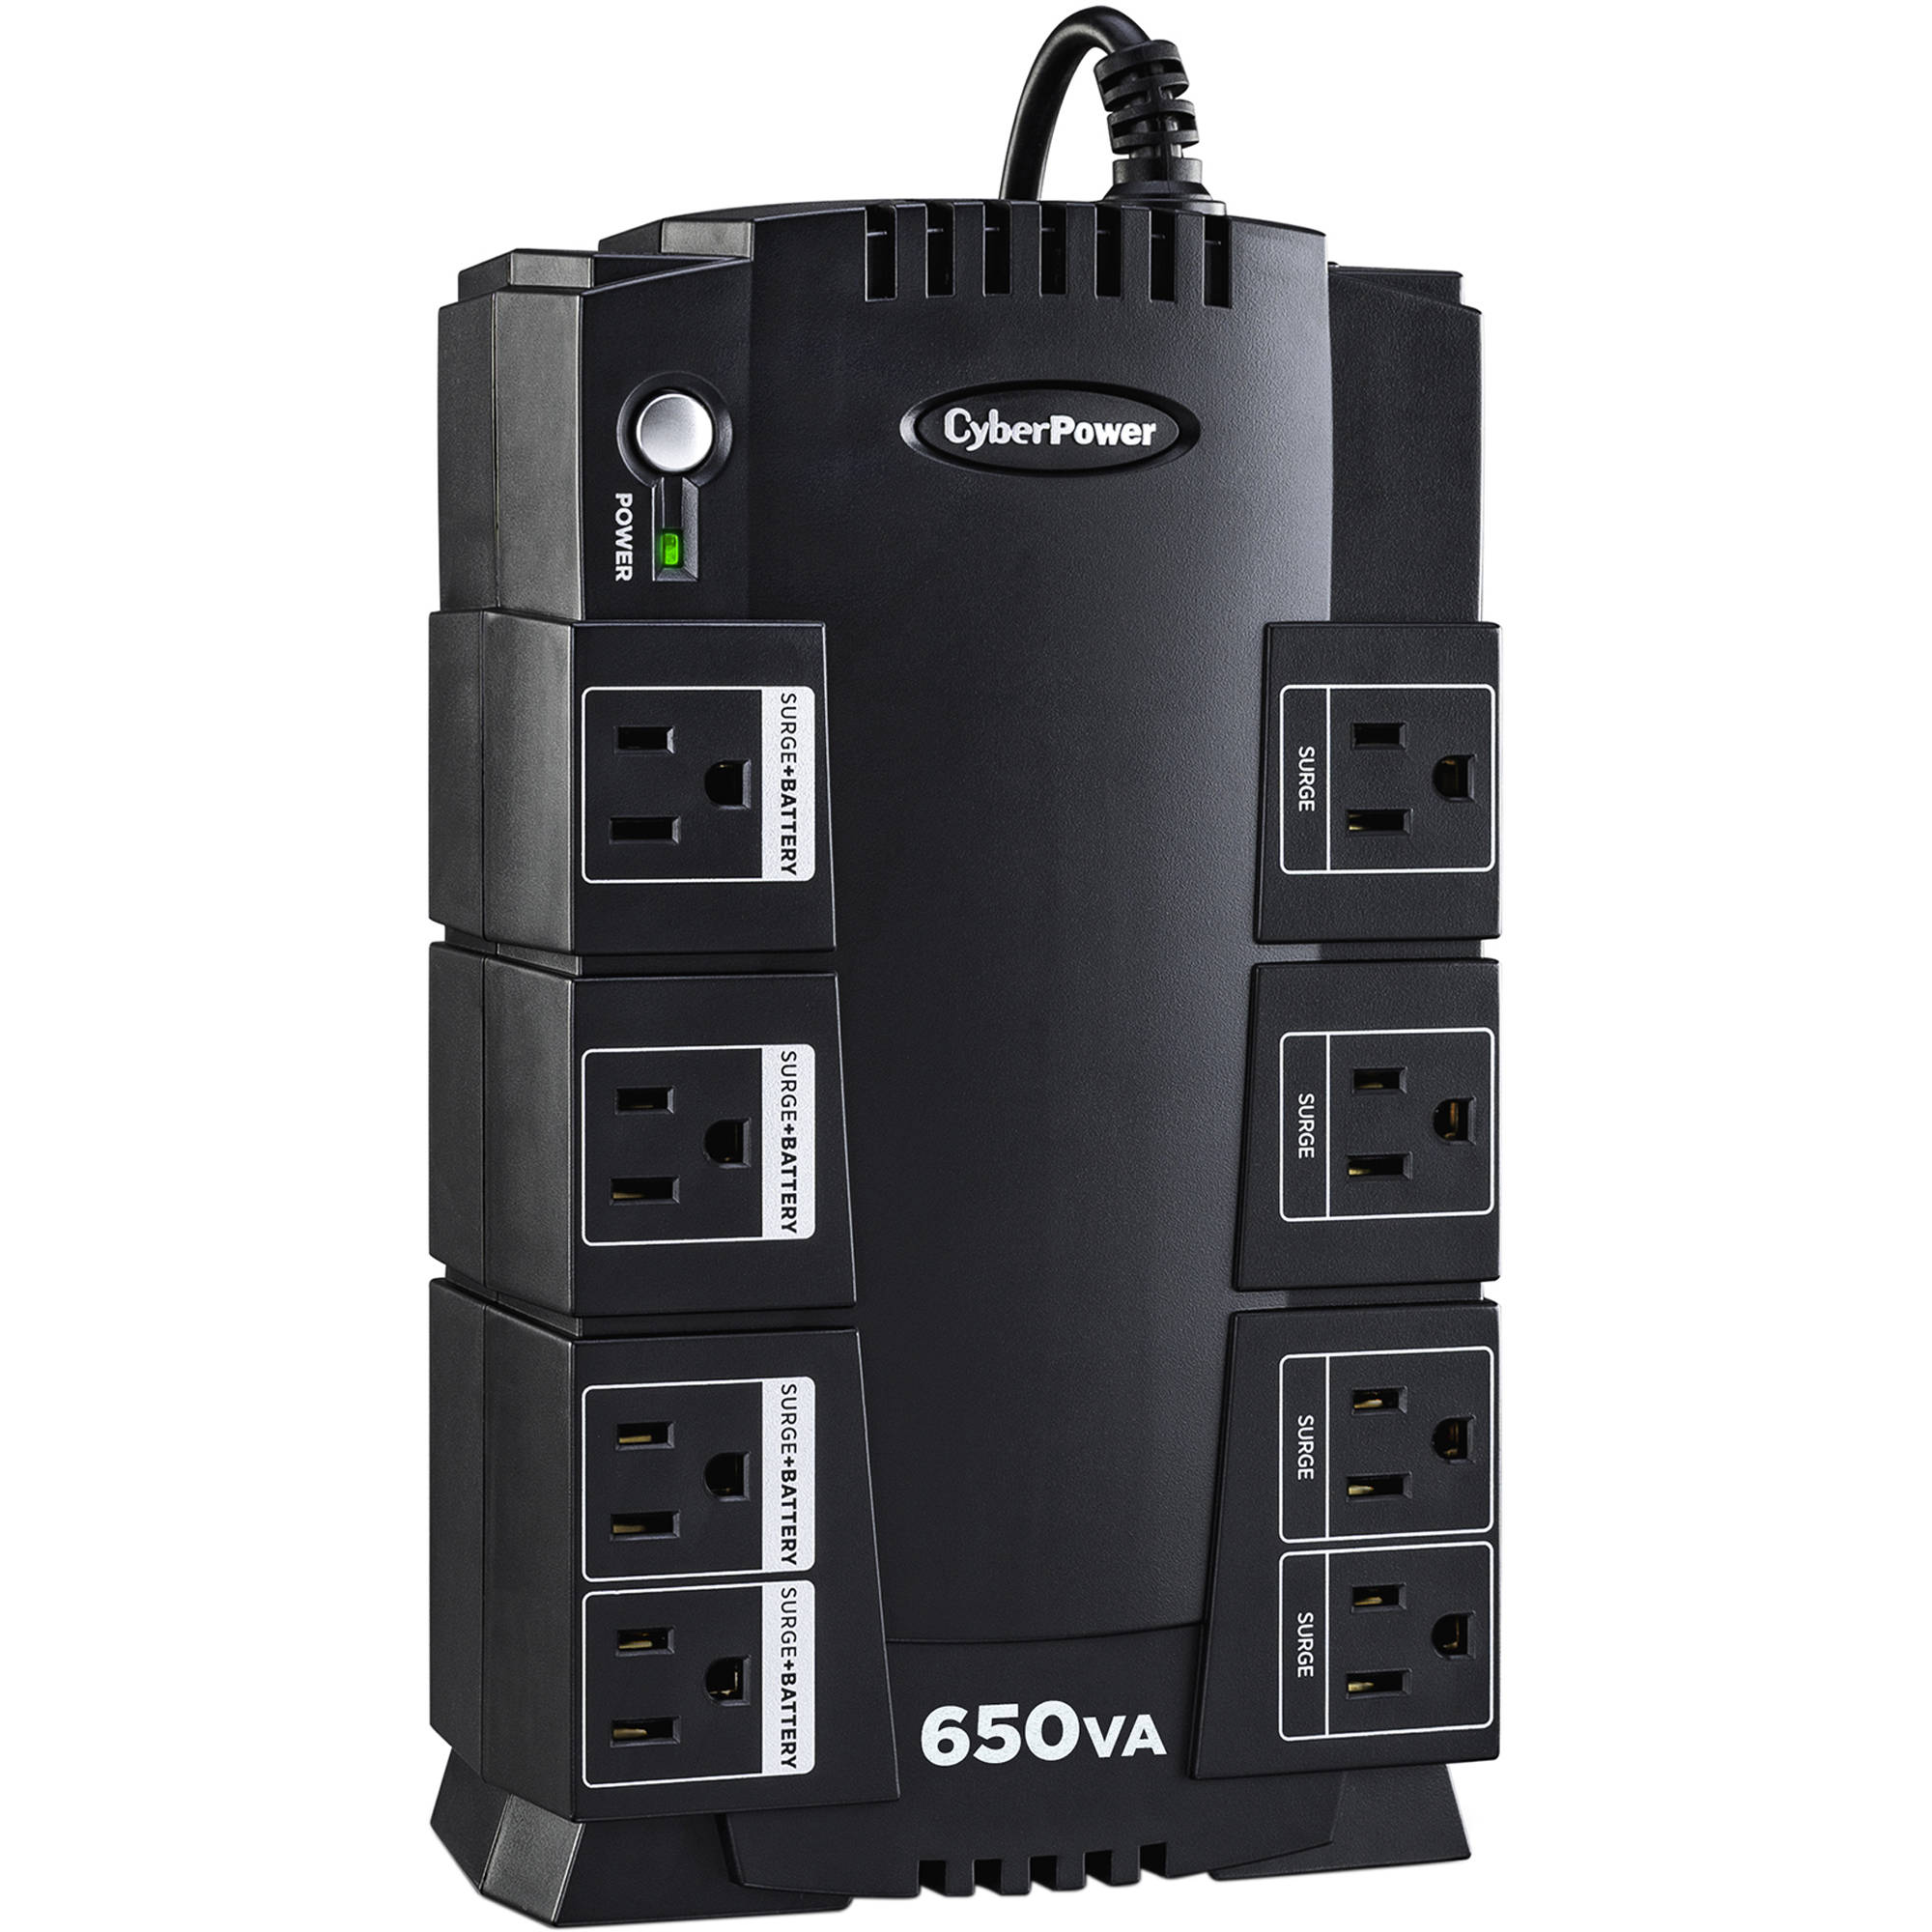 CyberPower 650VA 8-Outlet UPS System